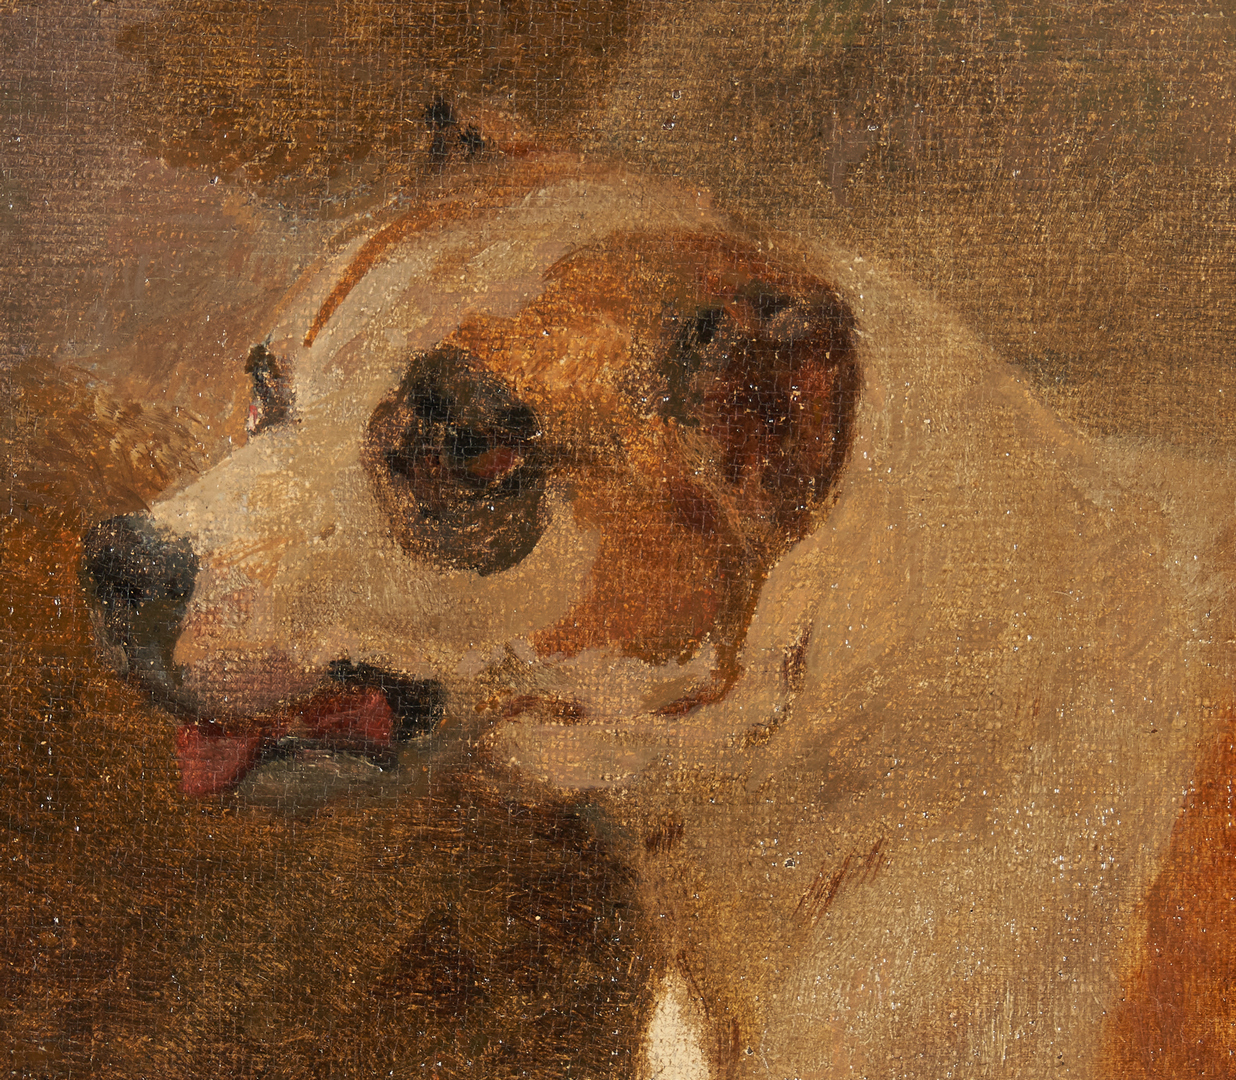 Lot 984: Continental School O/C, Painting of a Dog